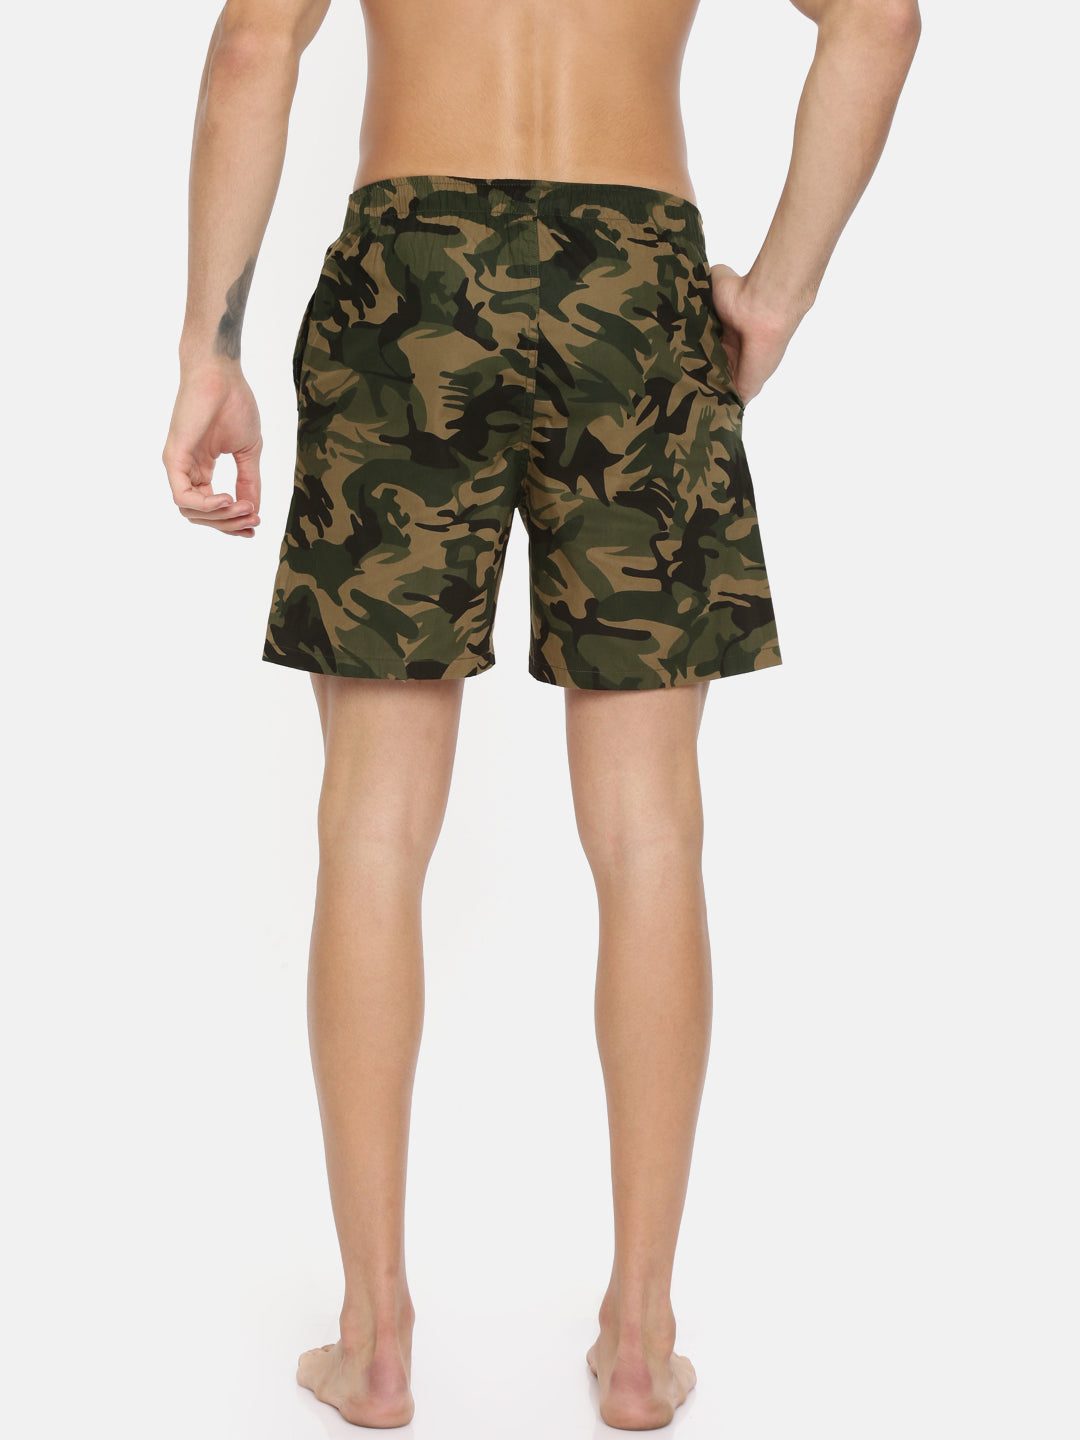 Bareblow New Army Green Camo Printed Boxer